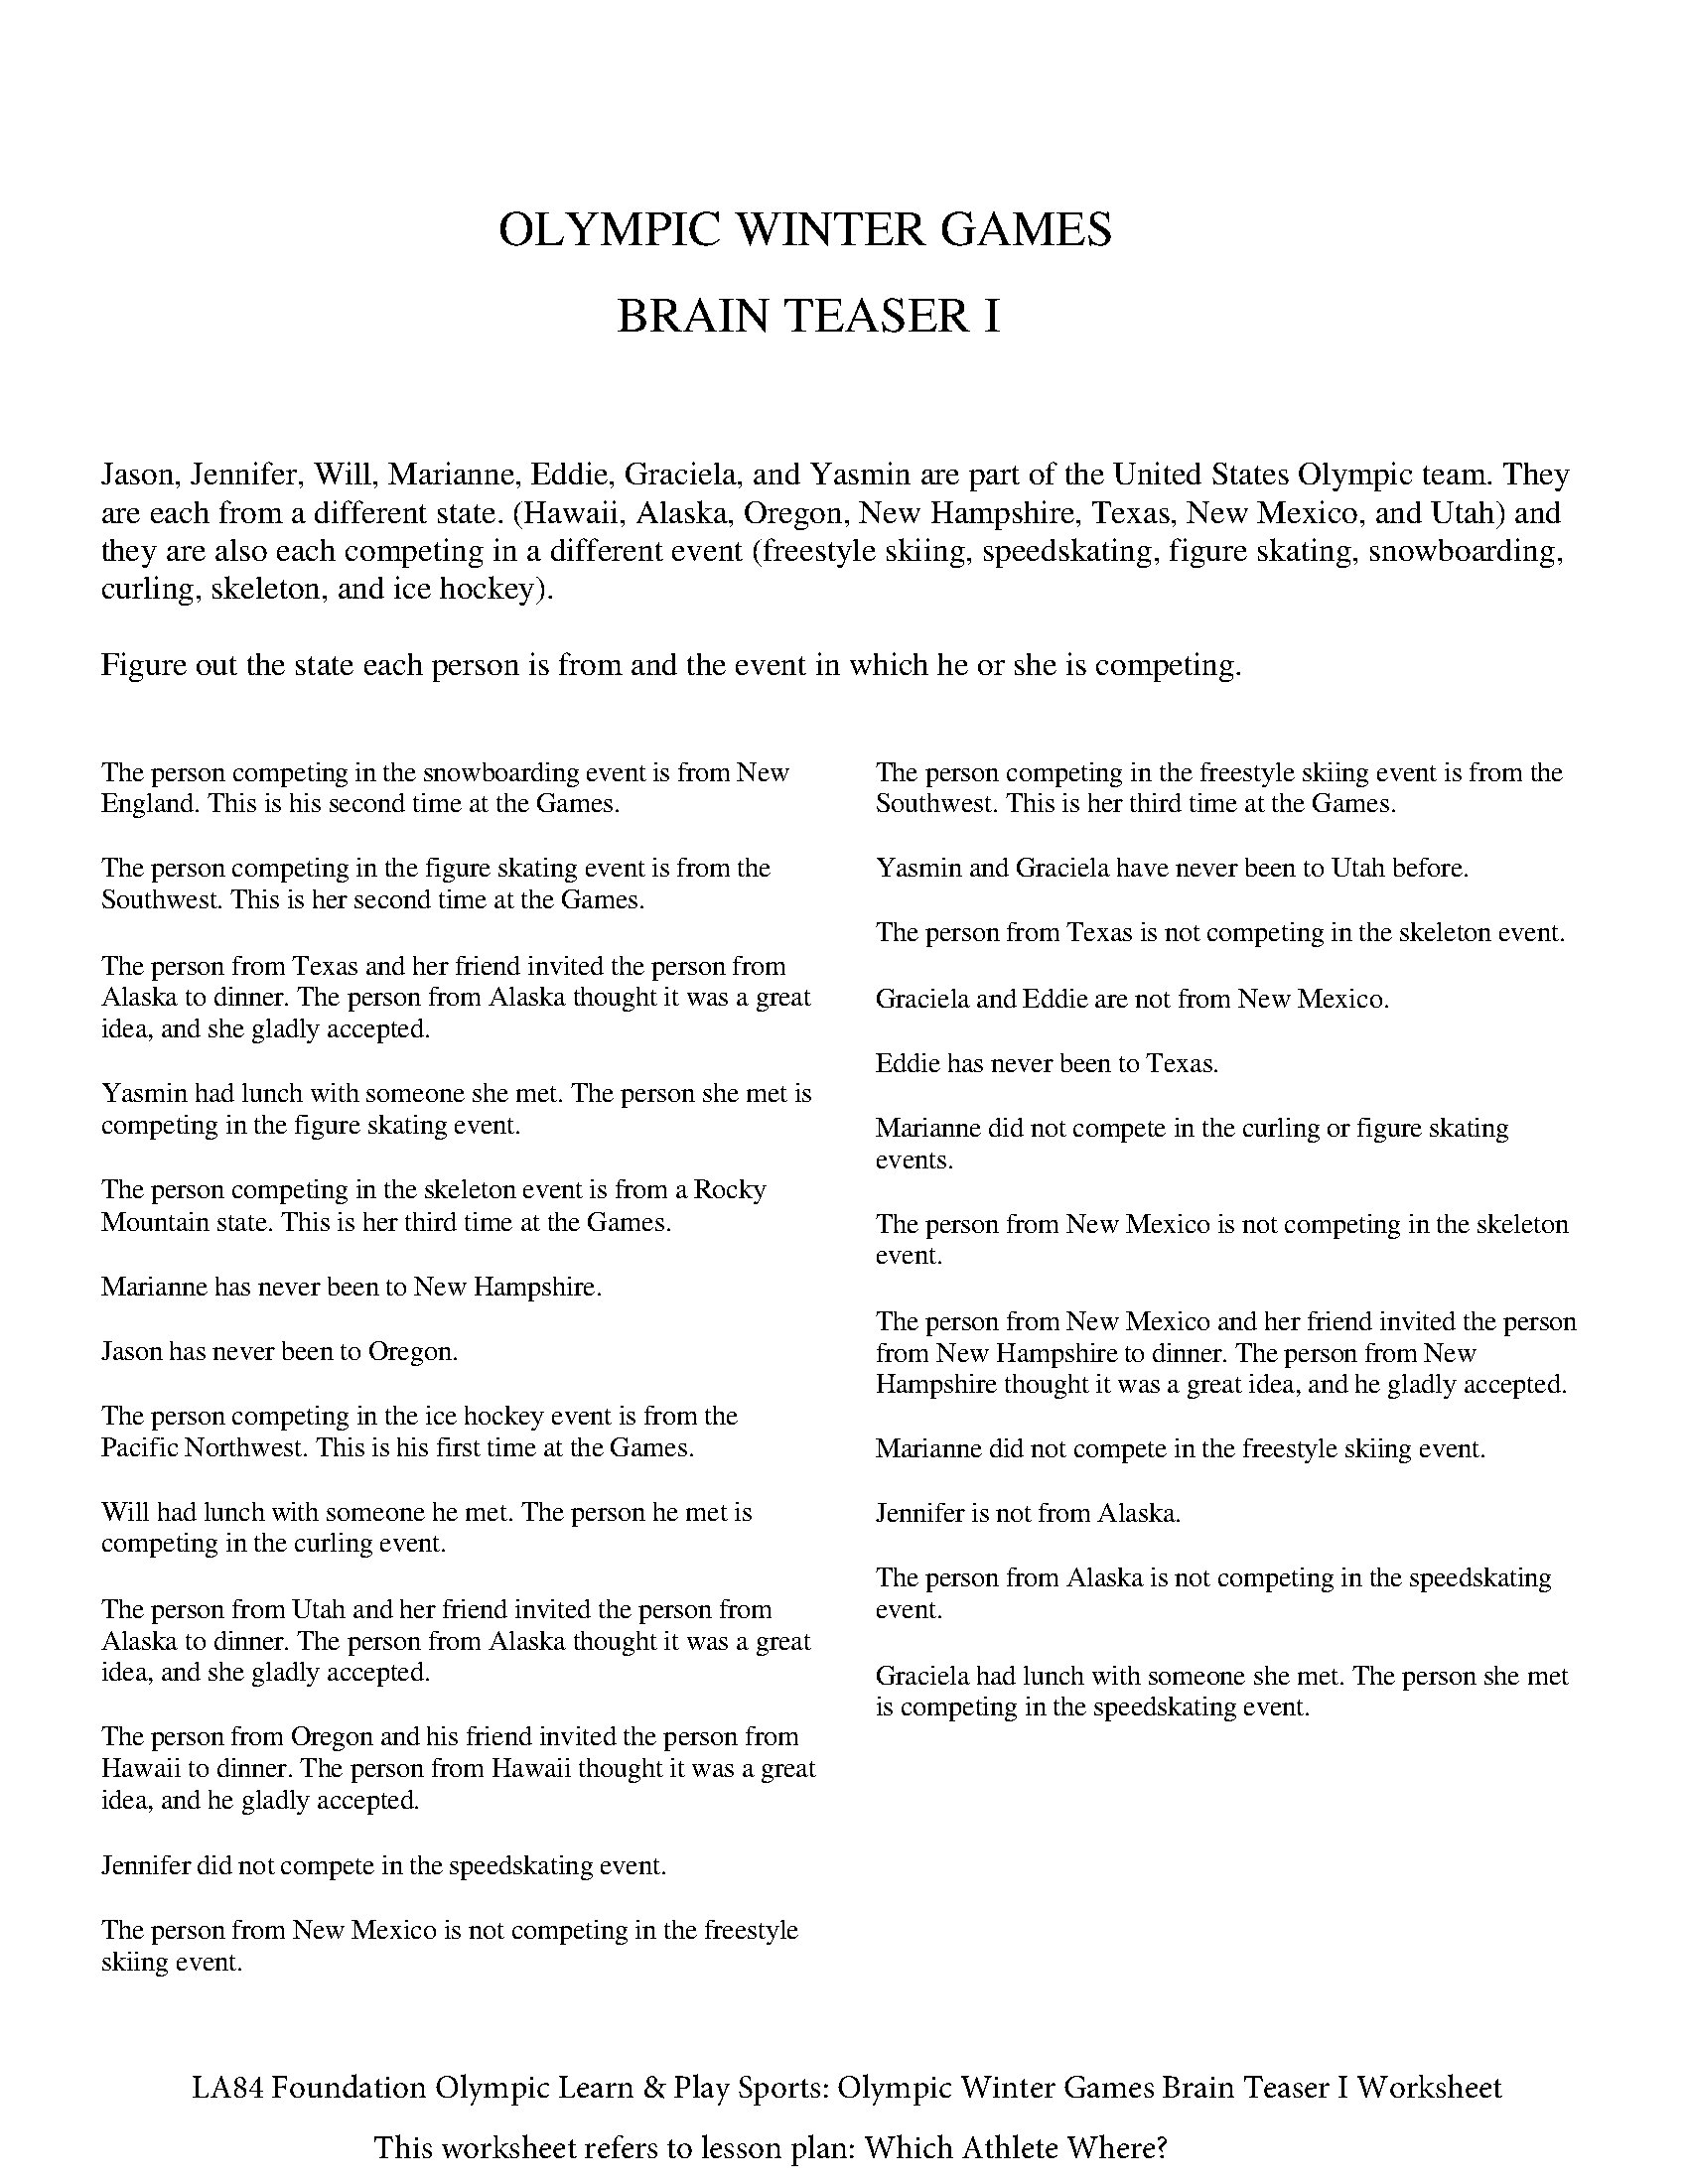 - Olympic Learn & Play Sports: Olympic Winter Games Brain Teaser I